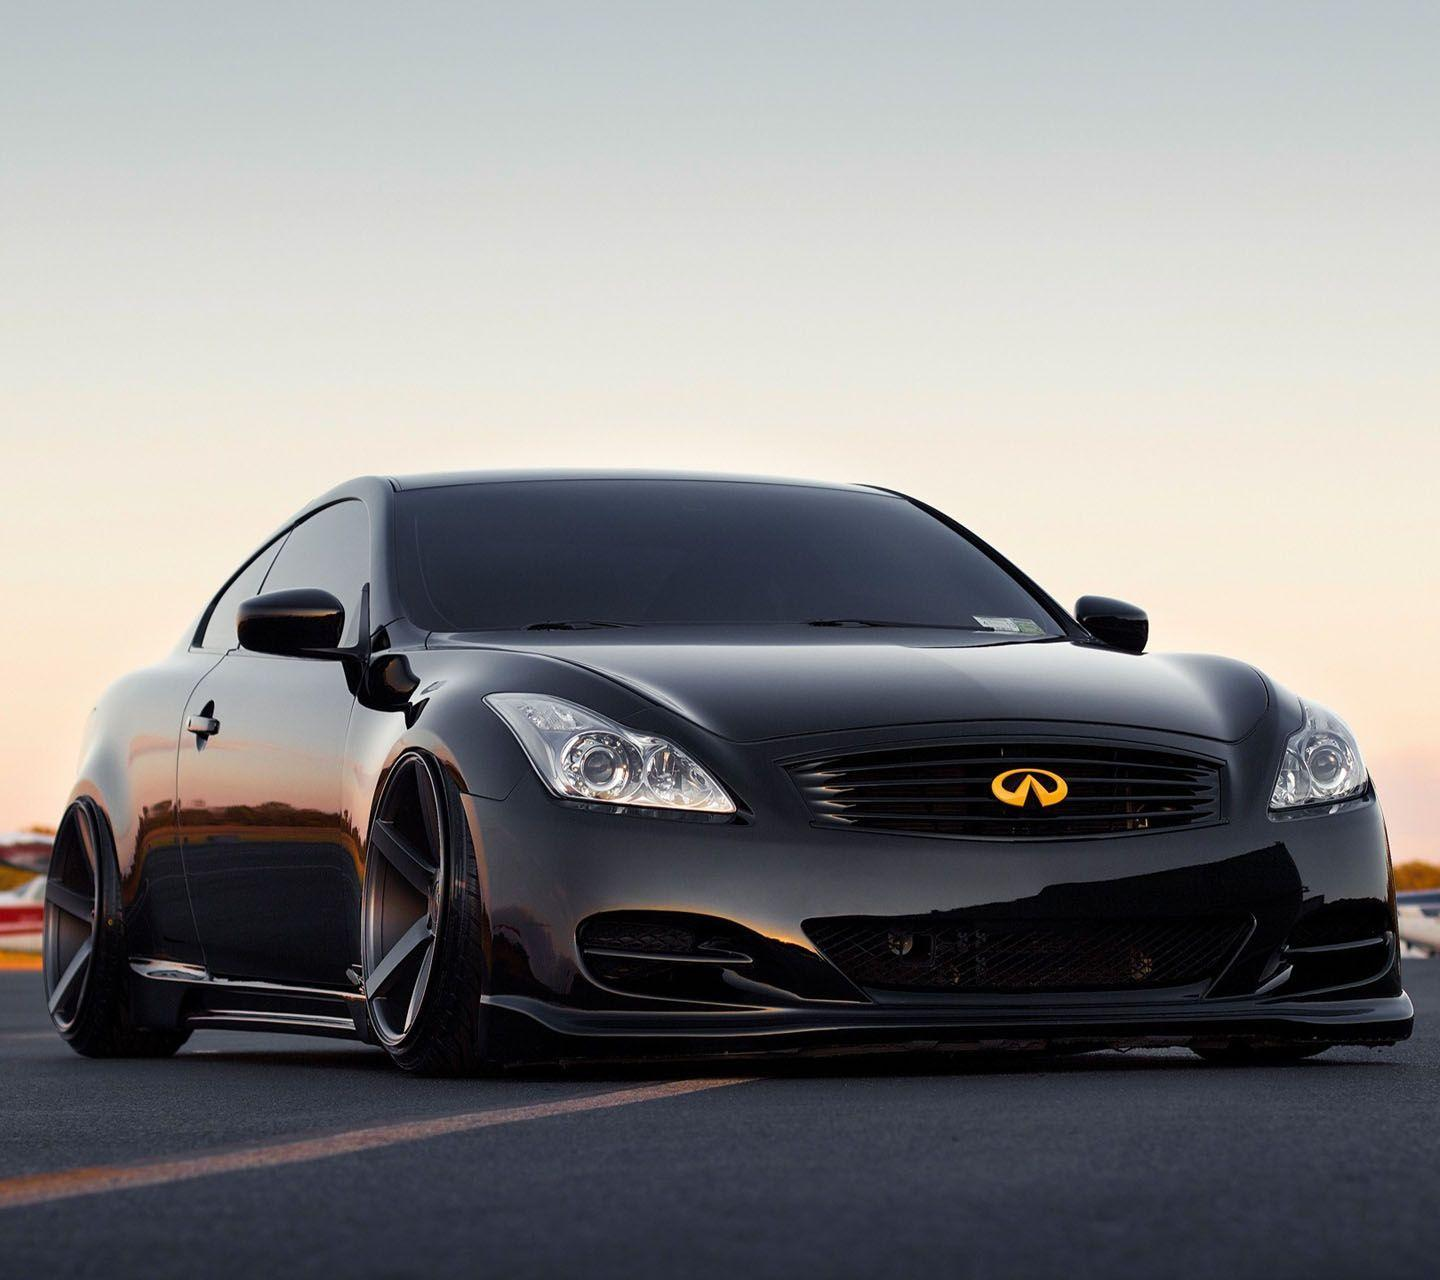 Infiniti G35 Wallpapers Wallpaper Cave